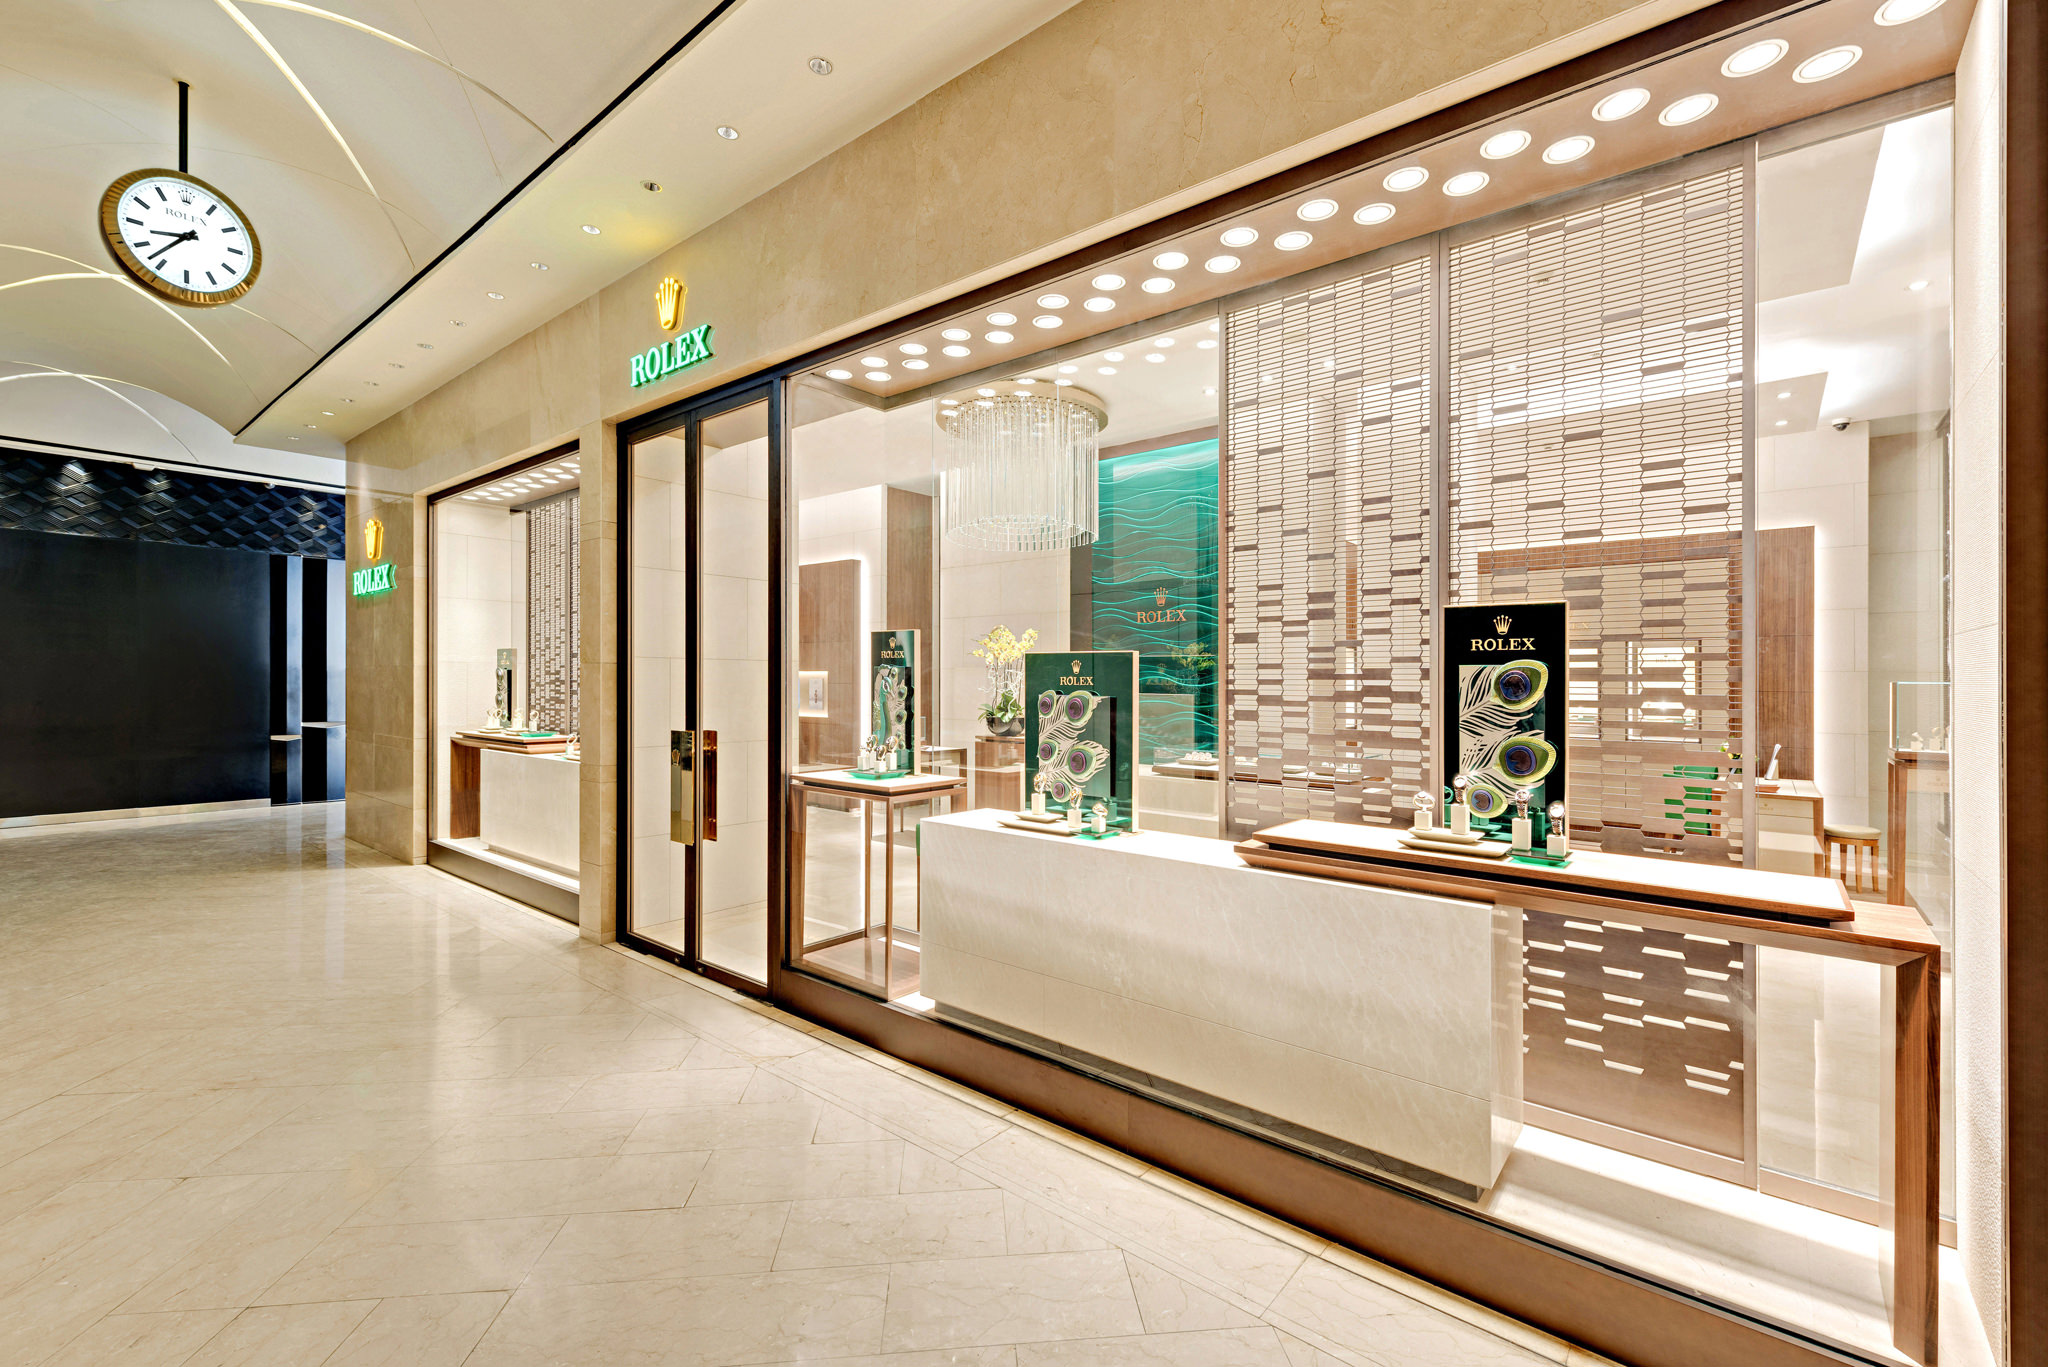 20161224 - Rolex - HCM - Commercial - Interior - Store - Retouch 0002.jpg